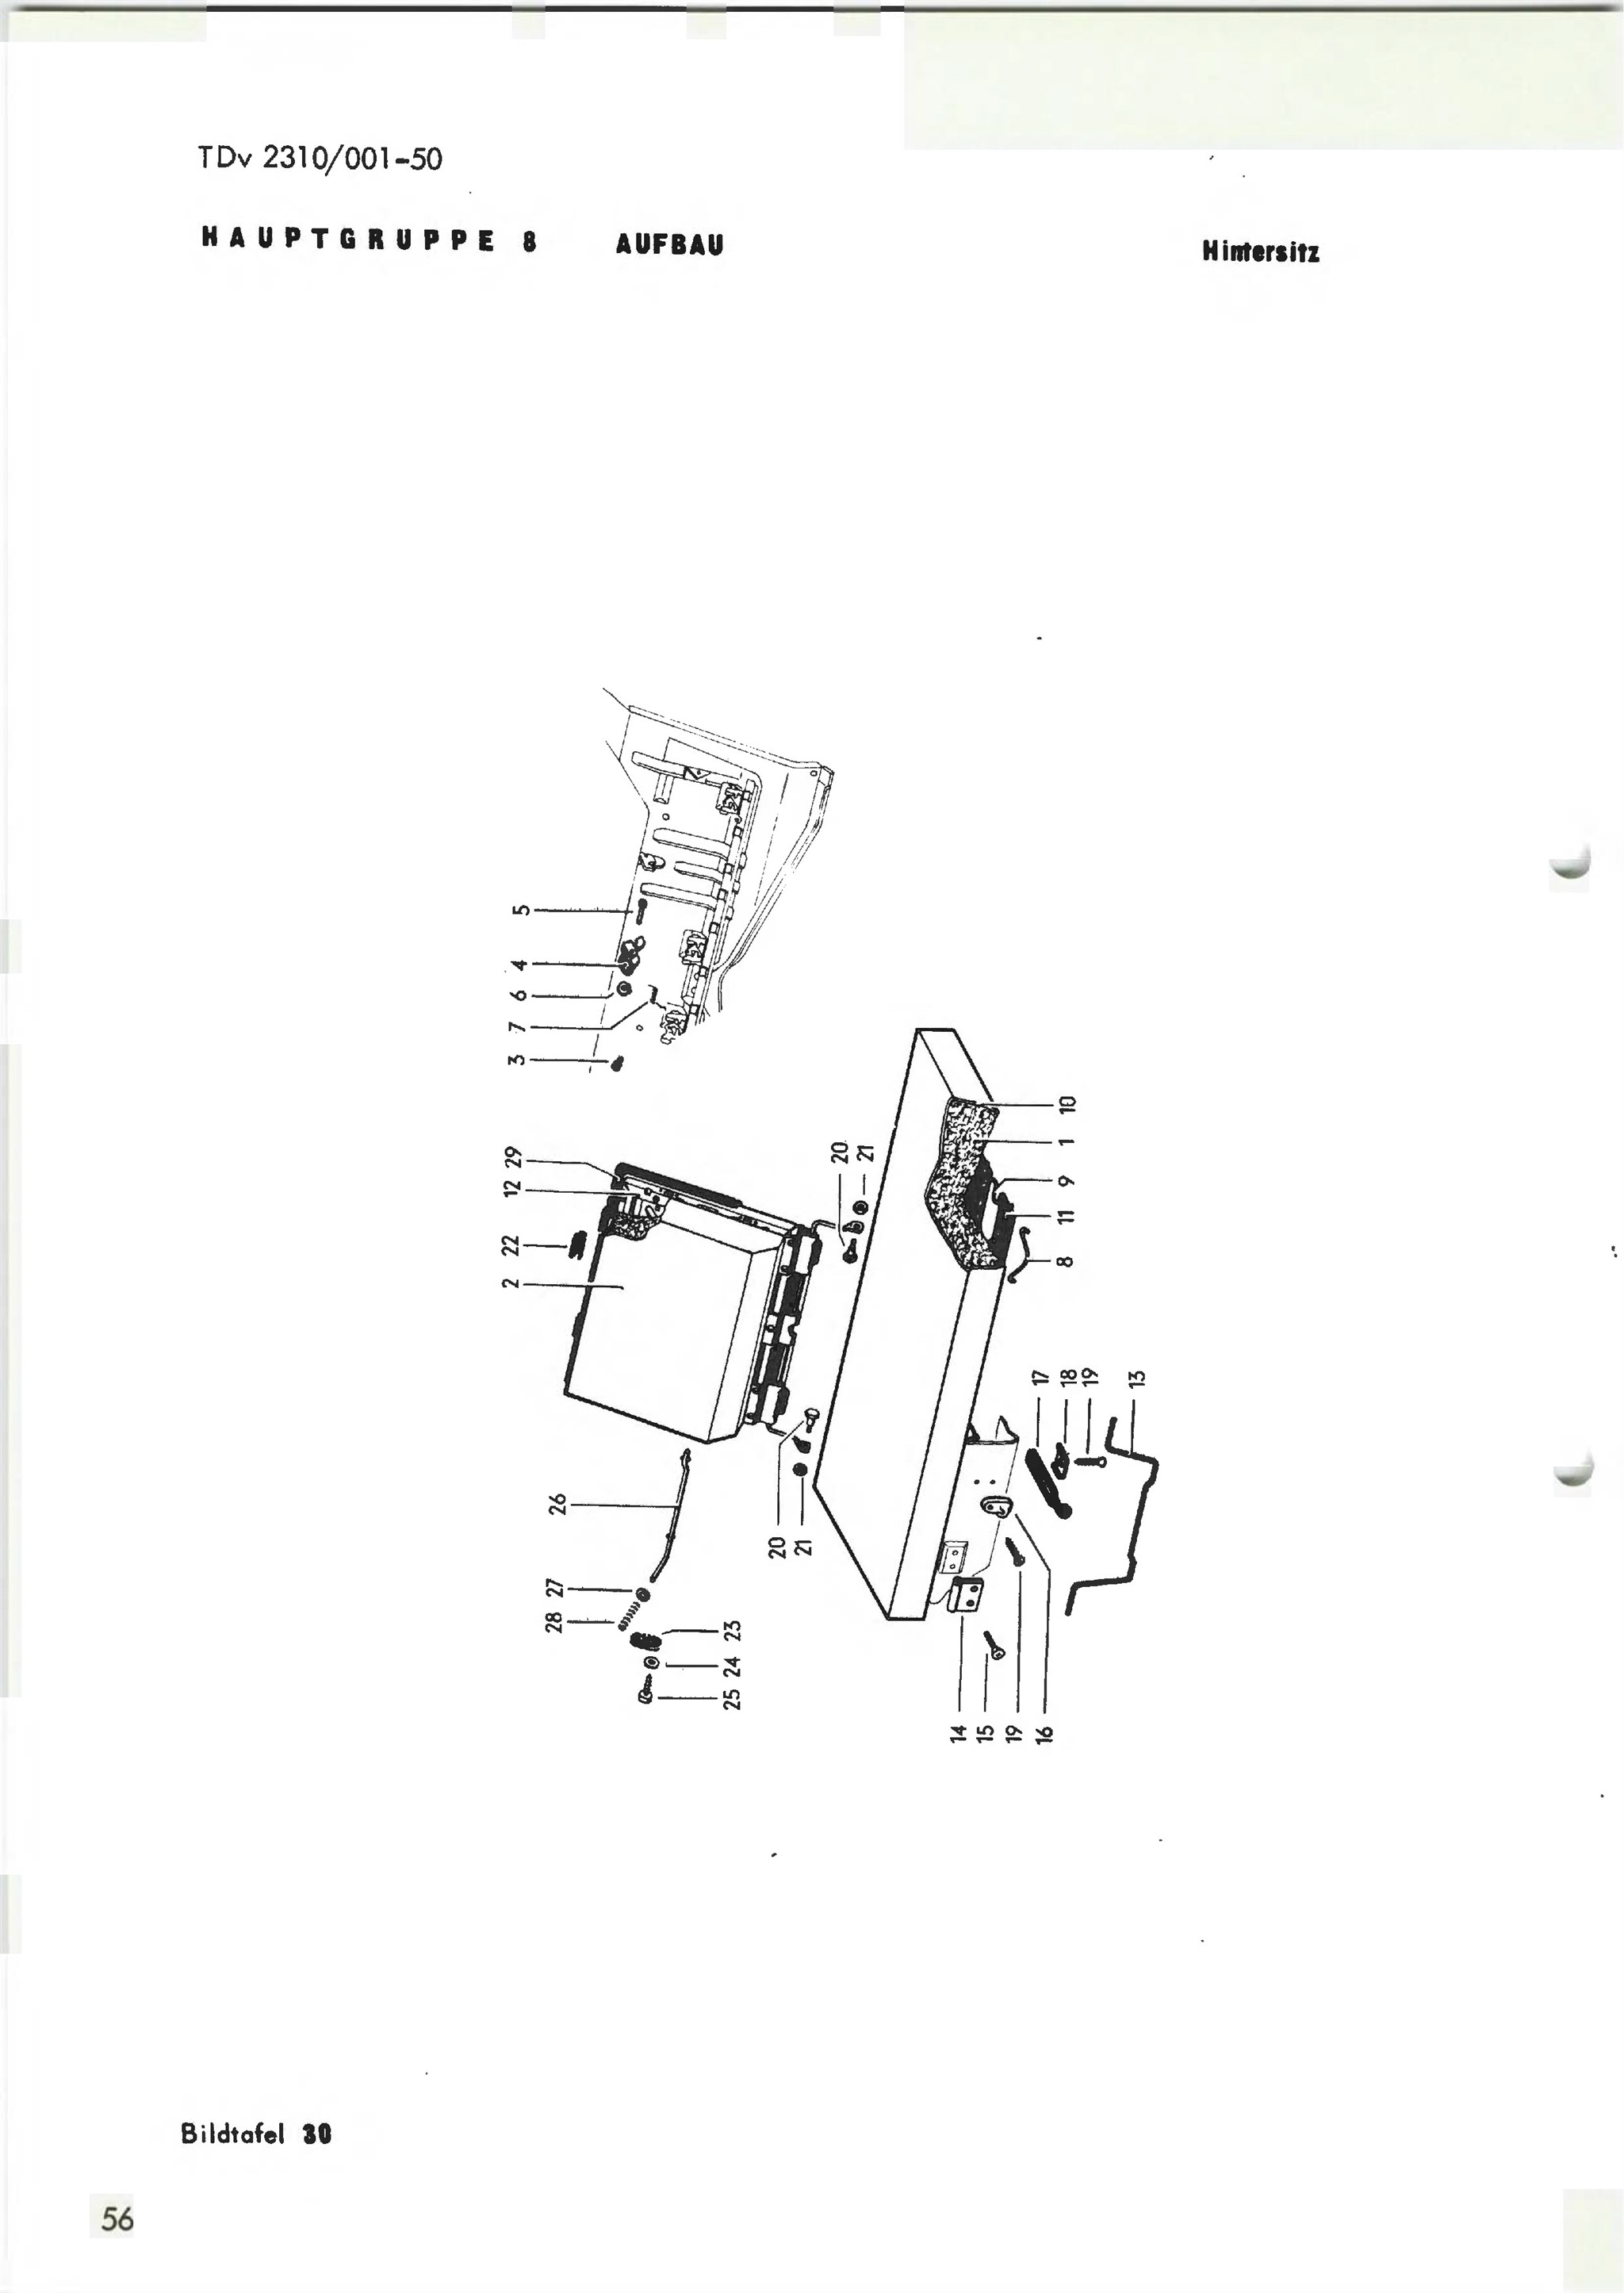 Cessna 140 Wiring Diagram additionally File 1997 2000 Ford Festiva Glxidoor additionally Wire Ford Starter Solenoid Diagram together with Dodge Dakota Wiring Harness Diagram as well 90 F150 Wiring Diagram. on yamaha f150 outboard wiring diagram